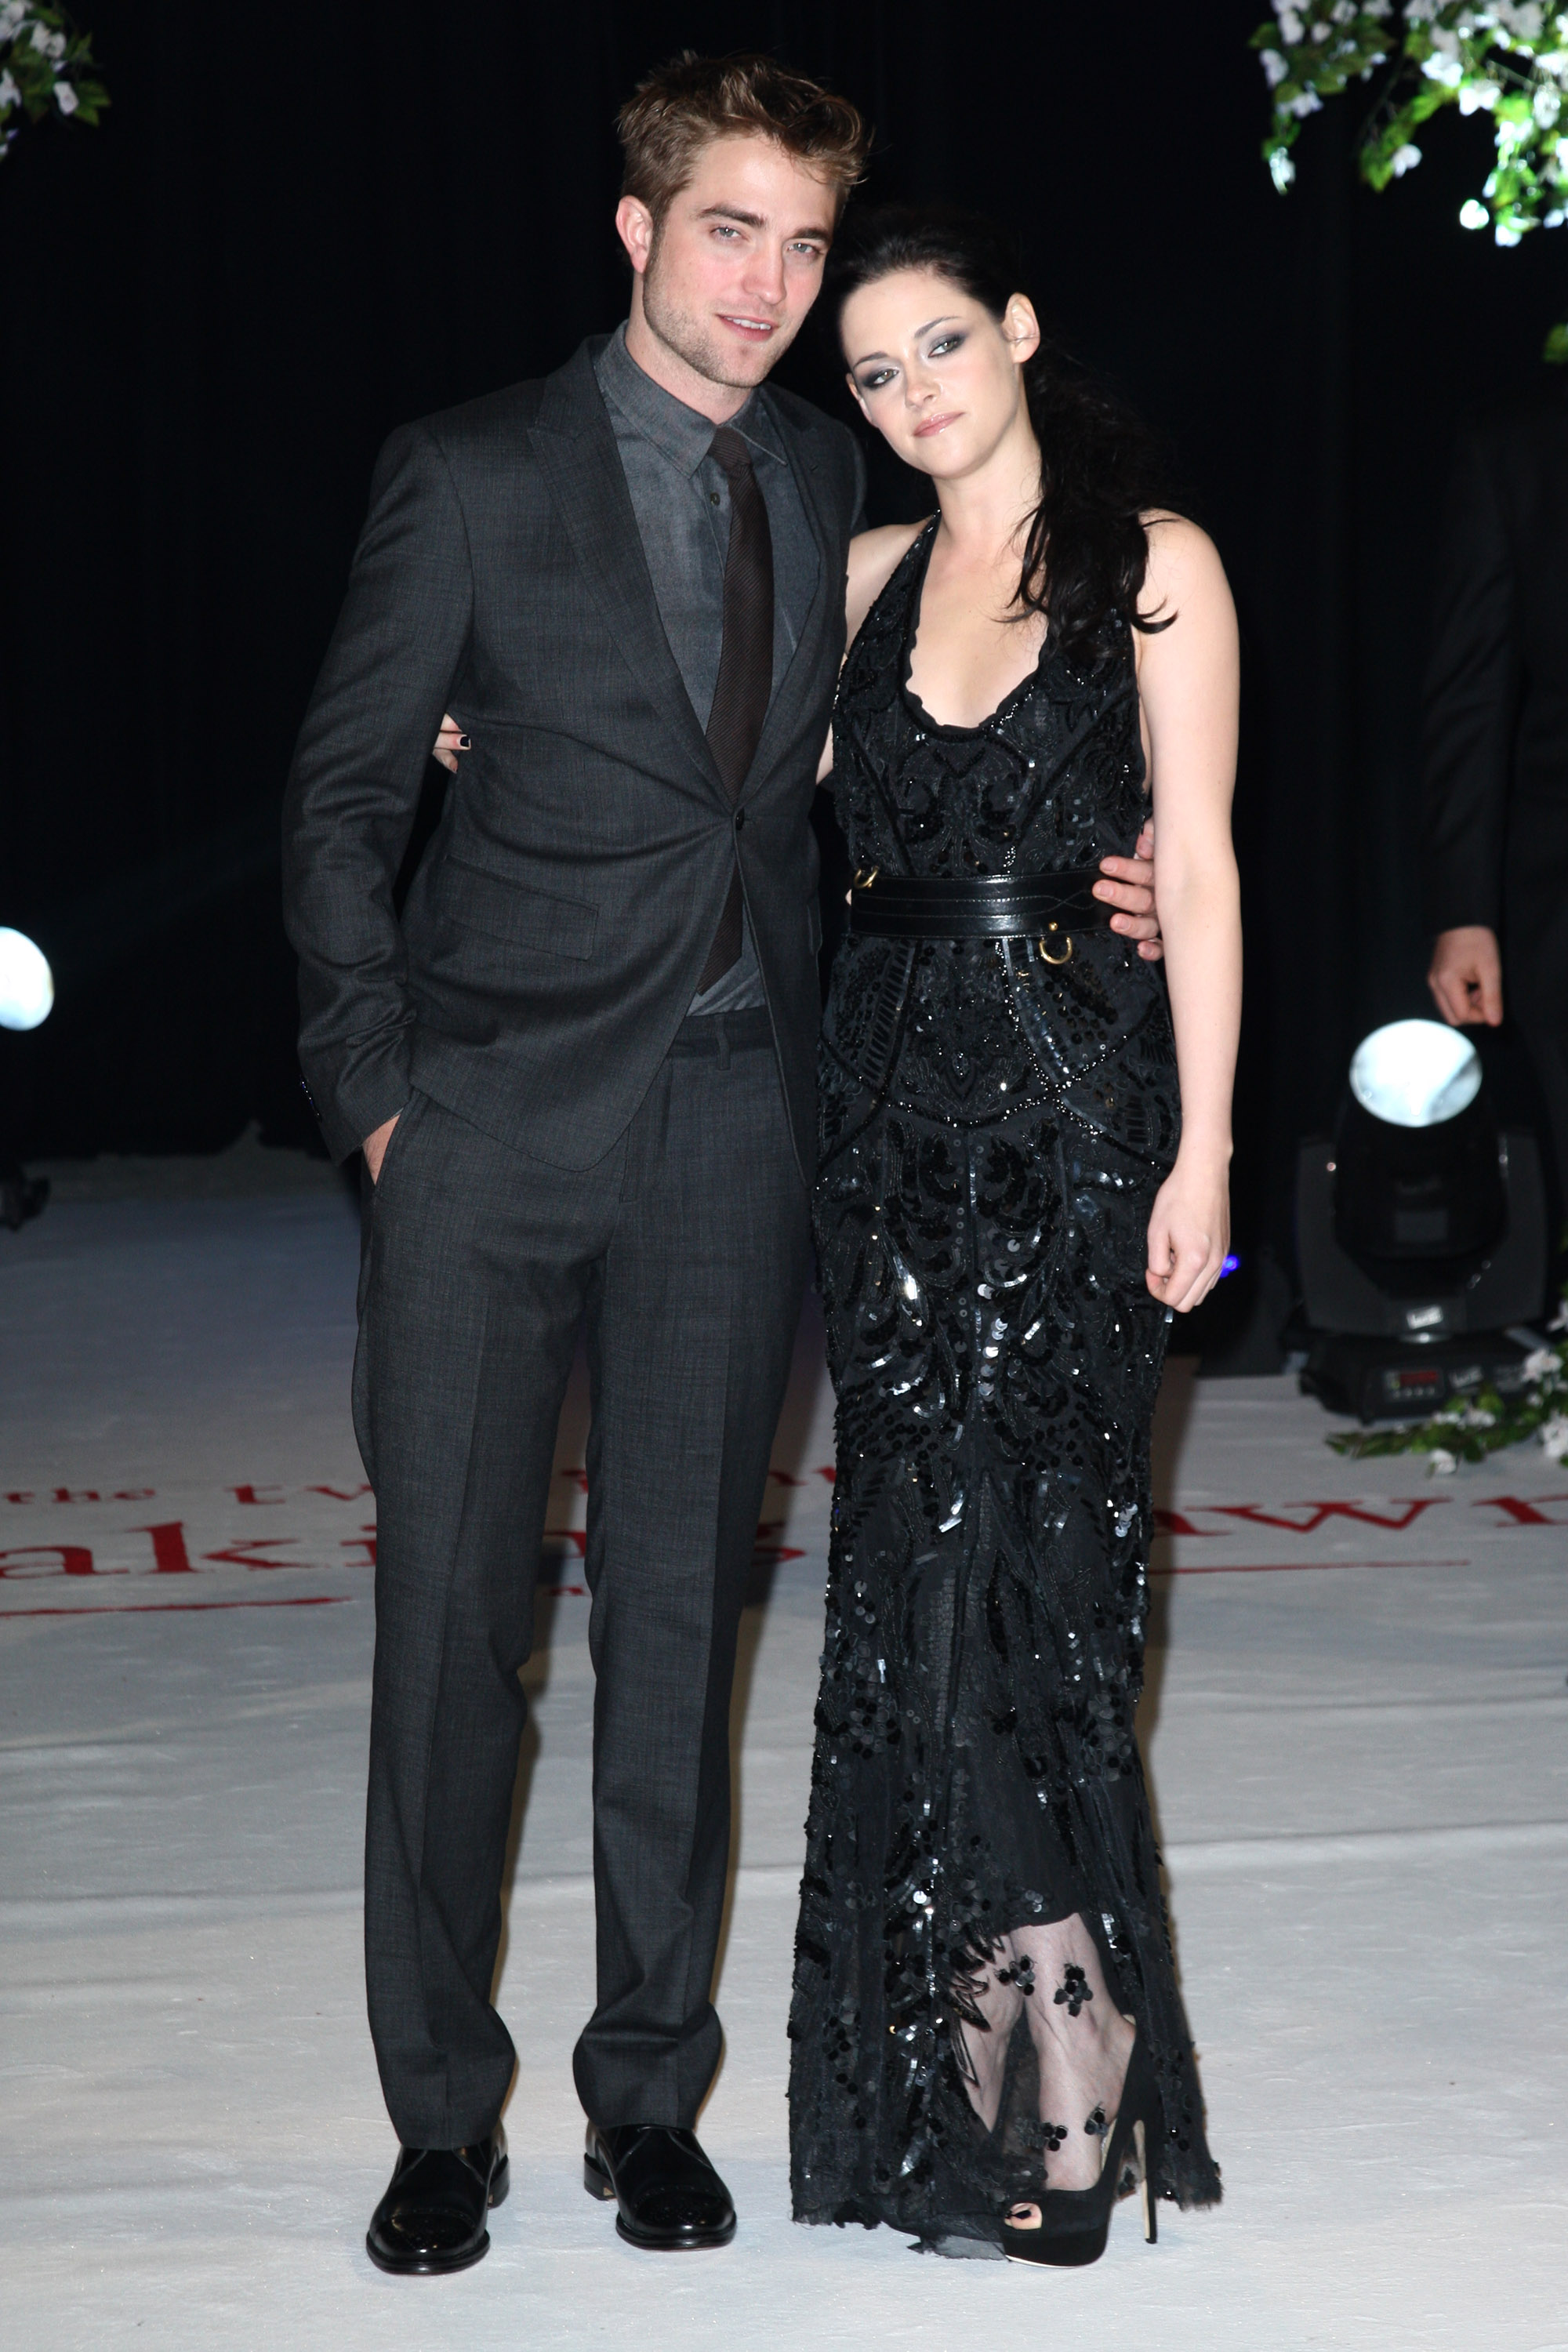 Robert Pattinson and Kristen Stewart at the premiere of Breaking Dawn Part 1 in London.